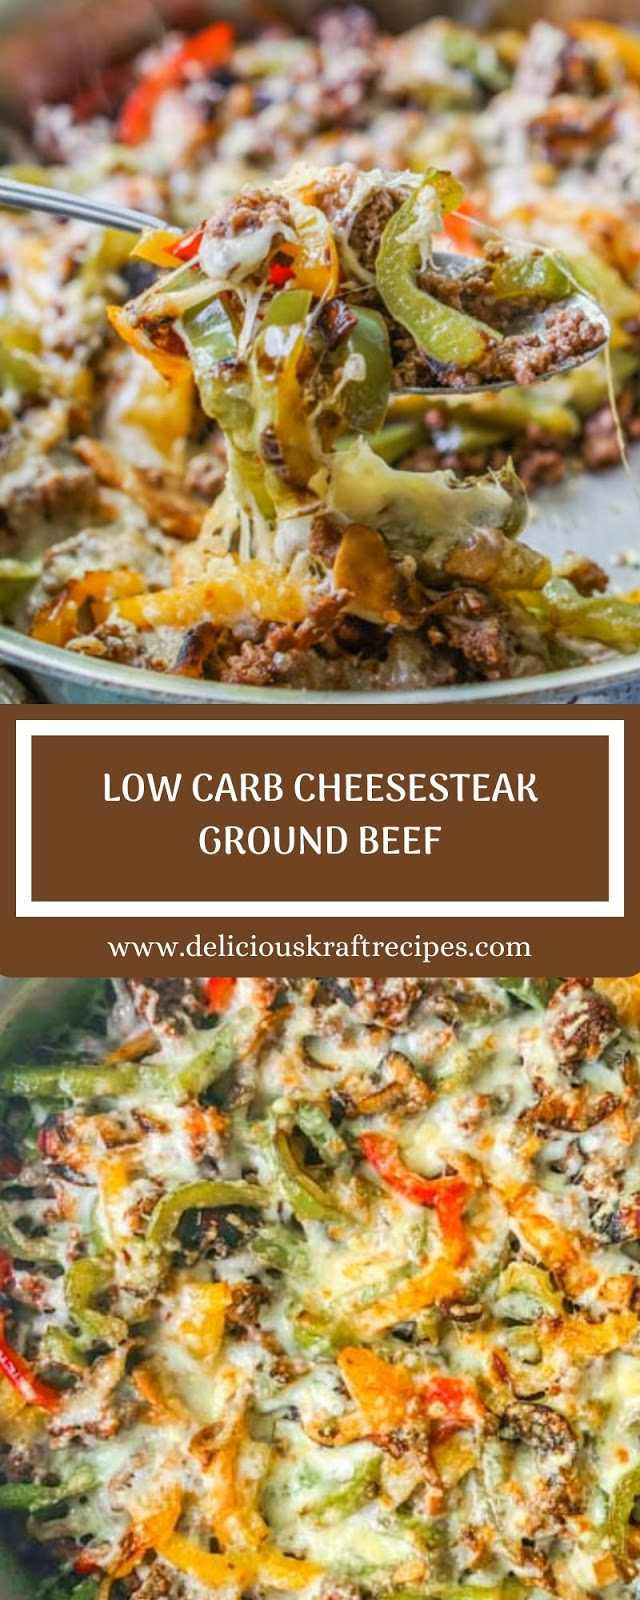 LOW CARB CHEESESTEAK GROUND BEEF